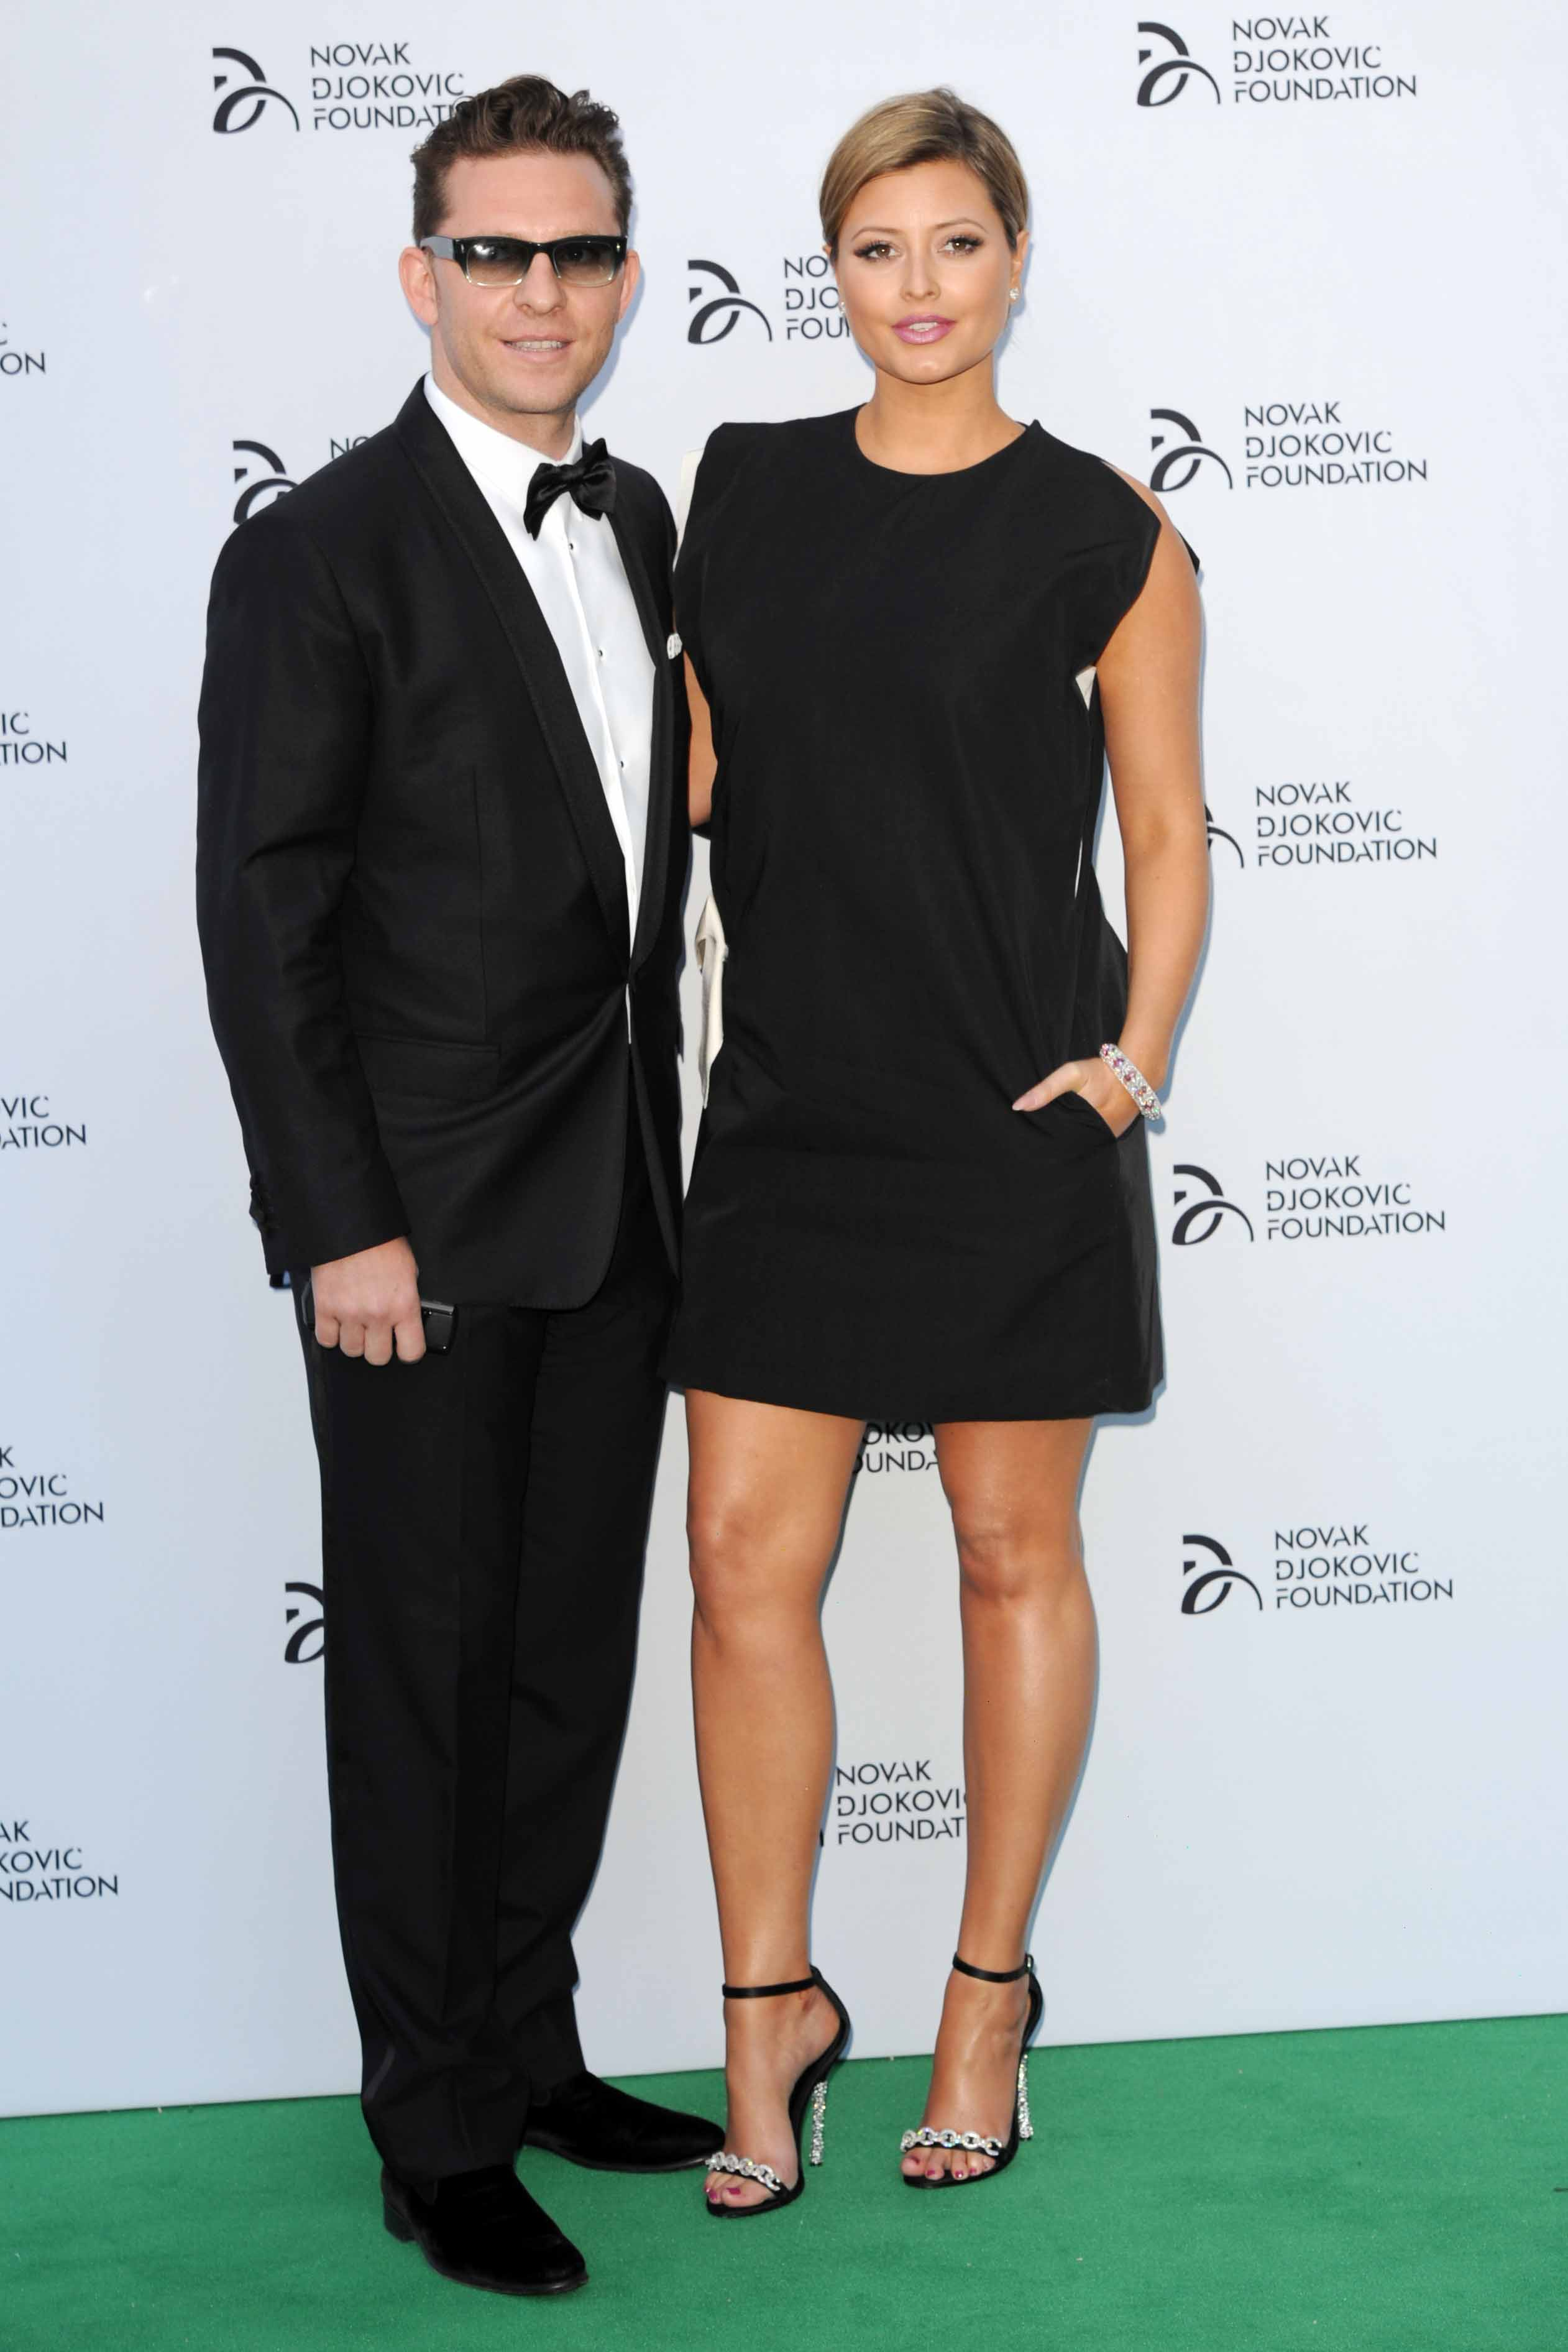 Holly Valance Is Pregnant With Millionaire Husband Nick